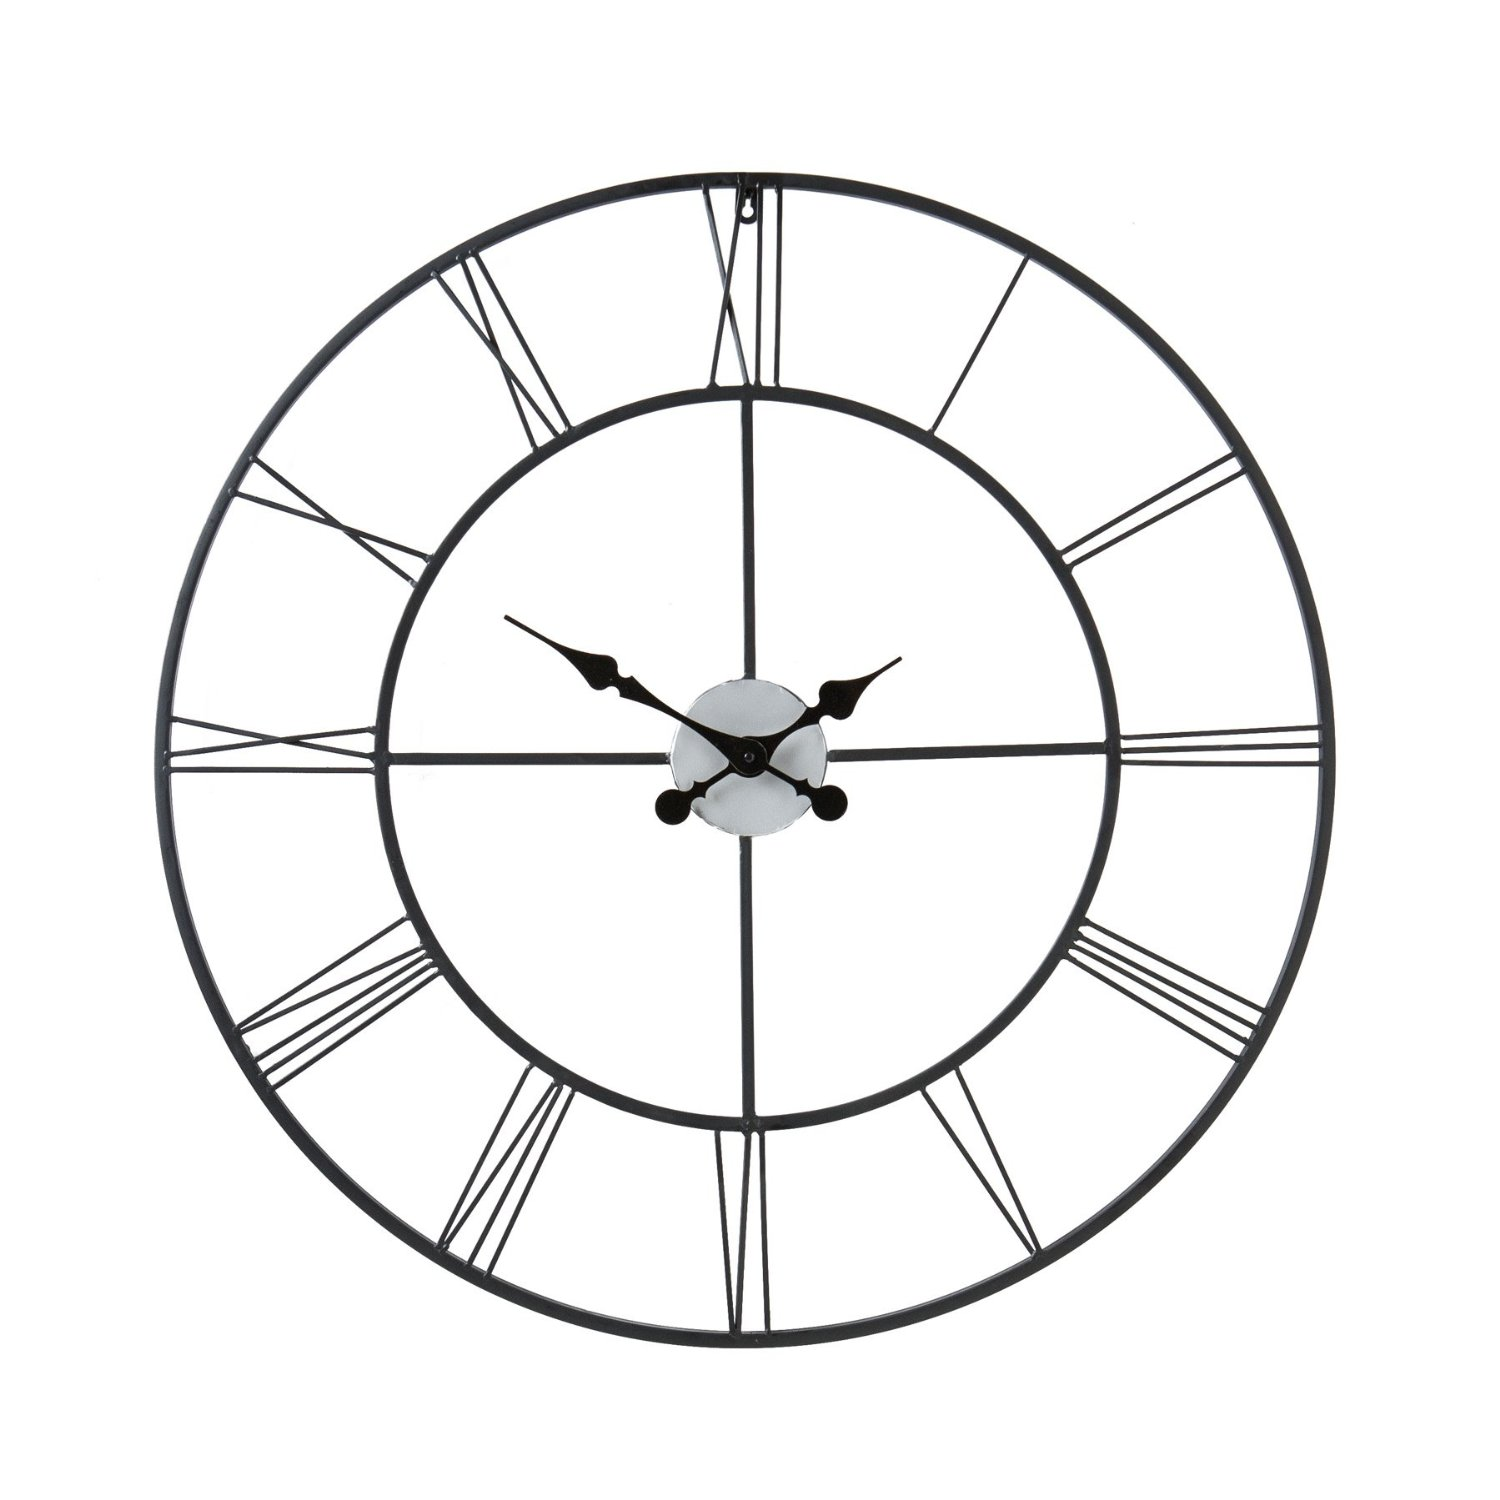 Total fab oversized giant metal wall clocks not all decorative wall clocks share the same face amipublicfo Image collections